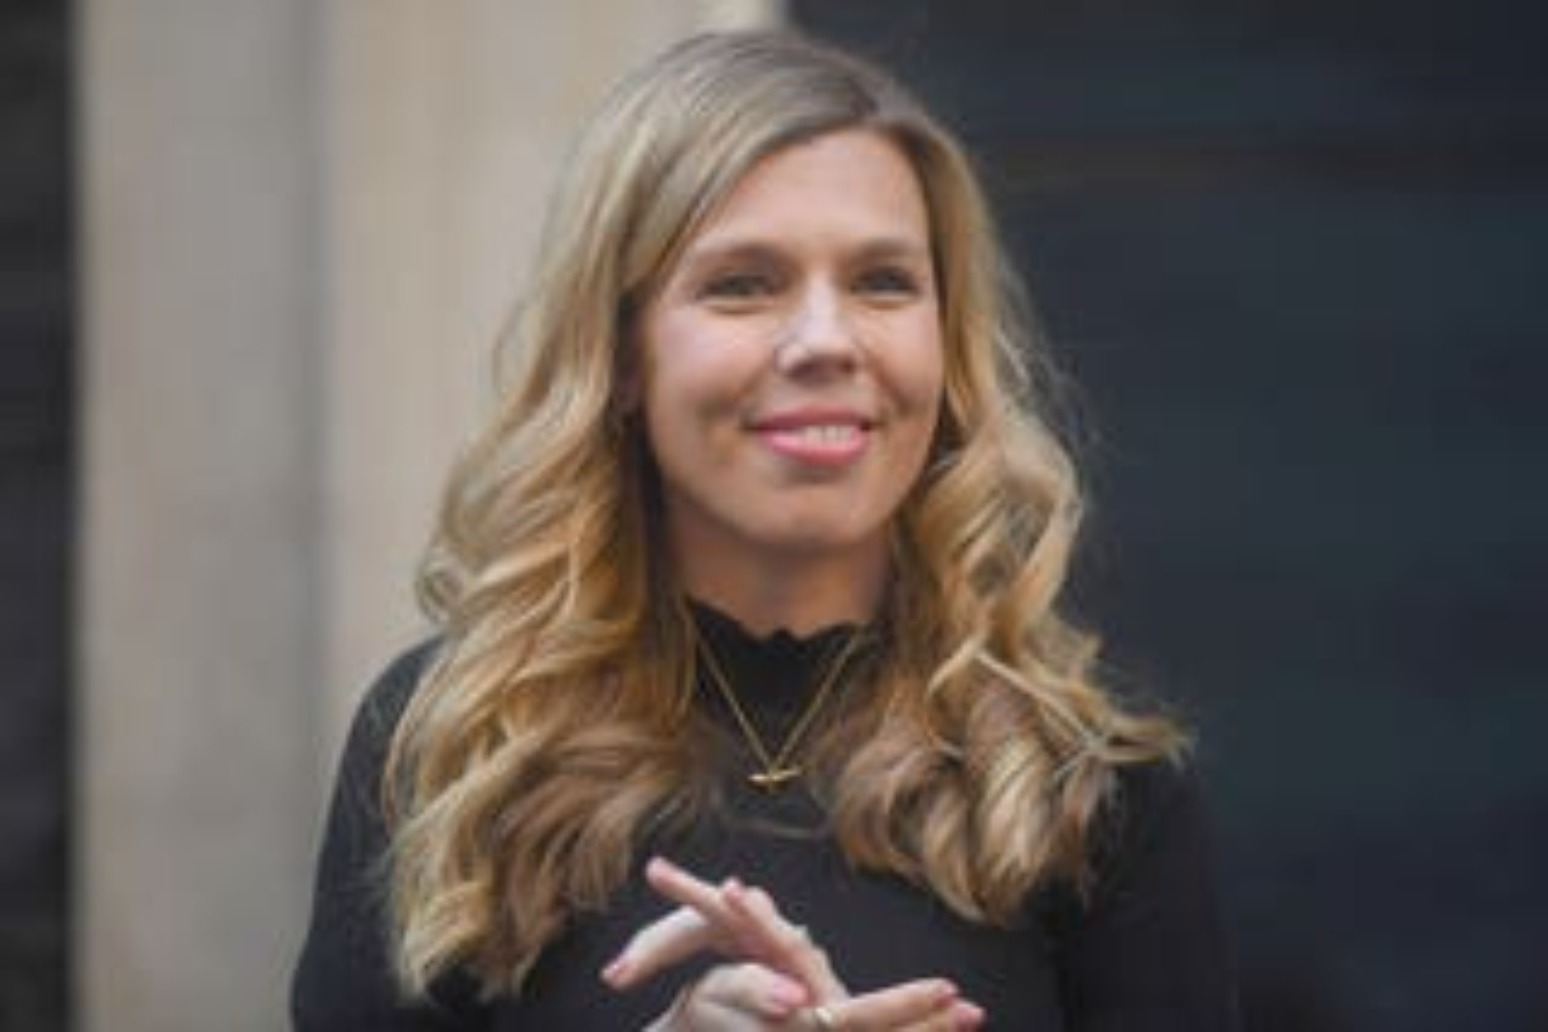 Carrie Symonds lands job with animal conservation charity.